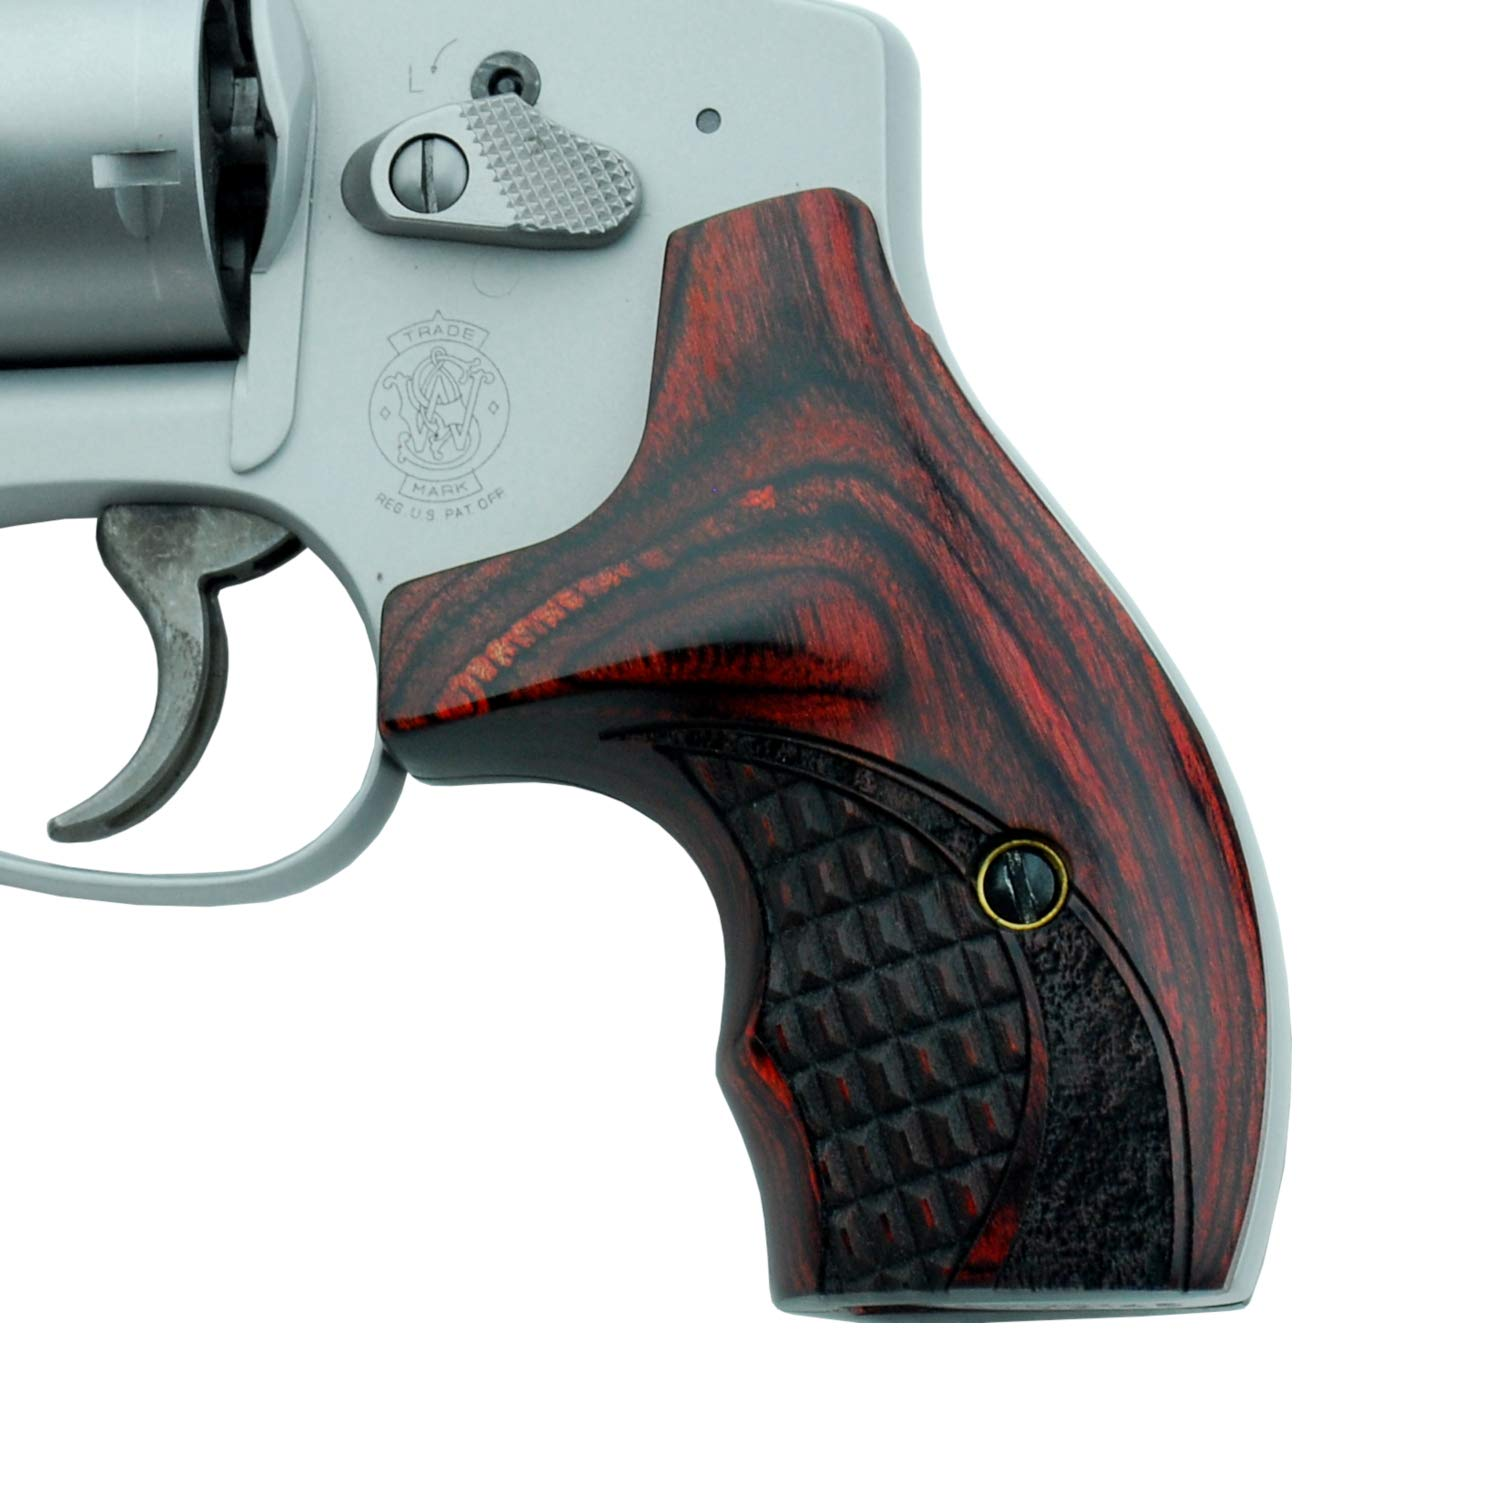 Altamont - S&W J Round Revolver Grips - Boot - Real Wood Gun Grips fit  Smith & Wesson J Frame Round Butt  38 Special and 9mm Revolvers - Made in  USA